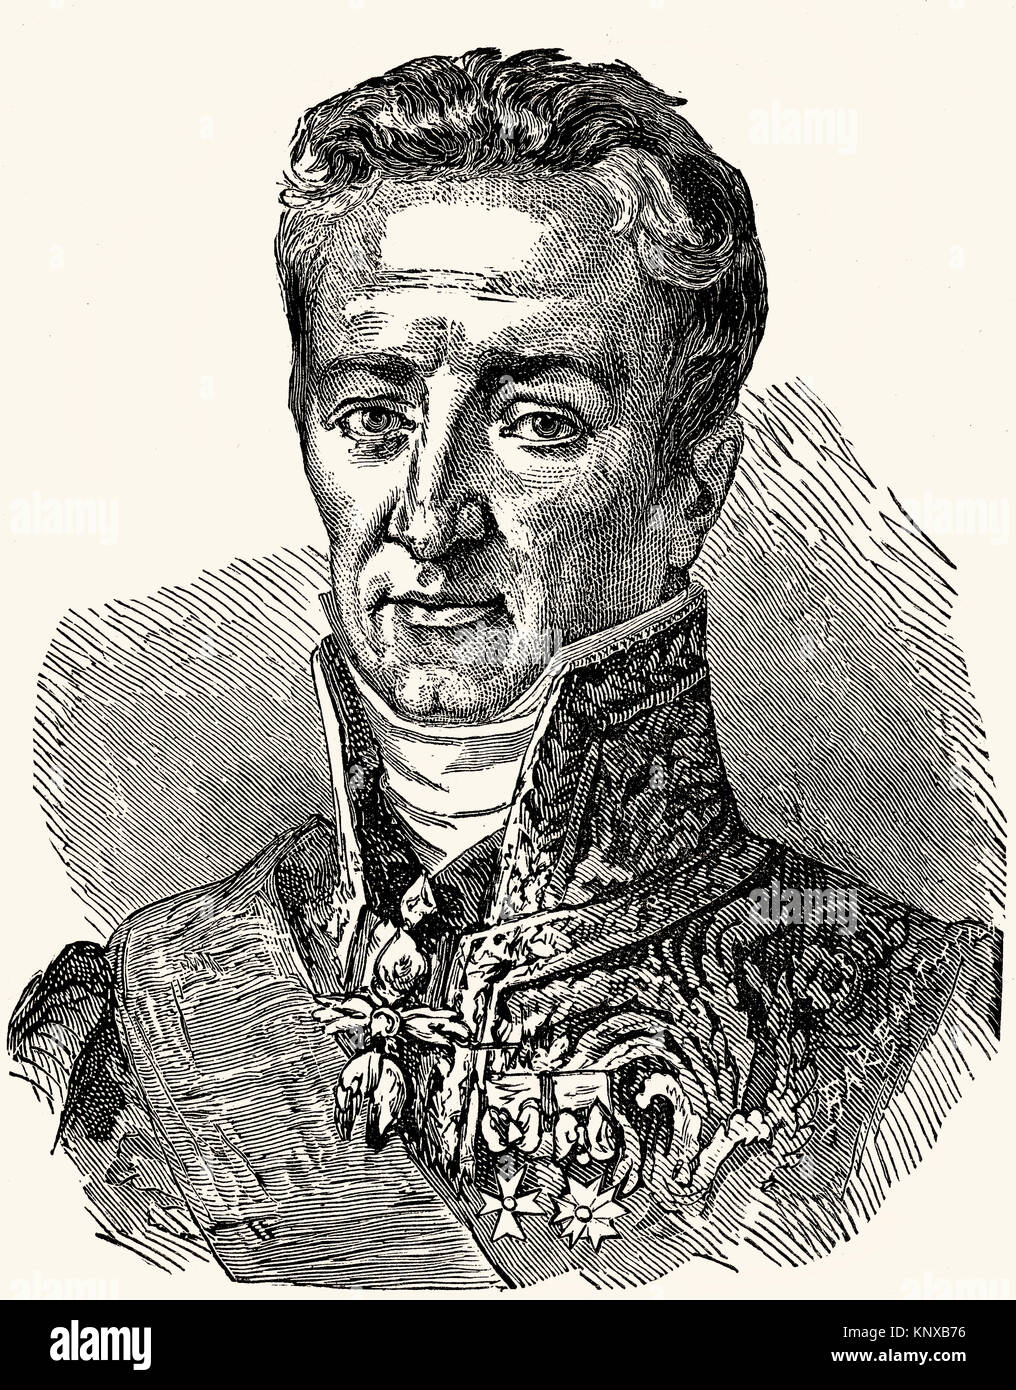 Jean-Baptiste Guillaume Joseph Marie Anne Séraphin, Count of Villèle, 1773 –1854, a French statesman - Stock Image